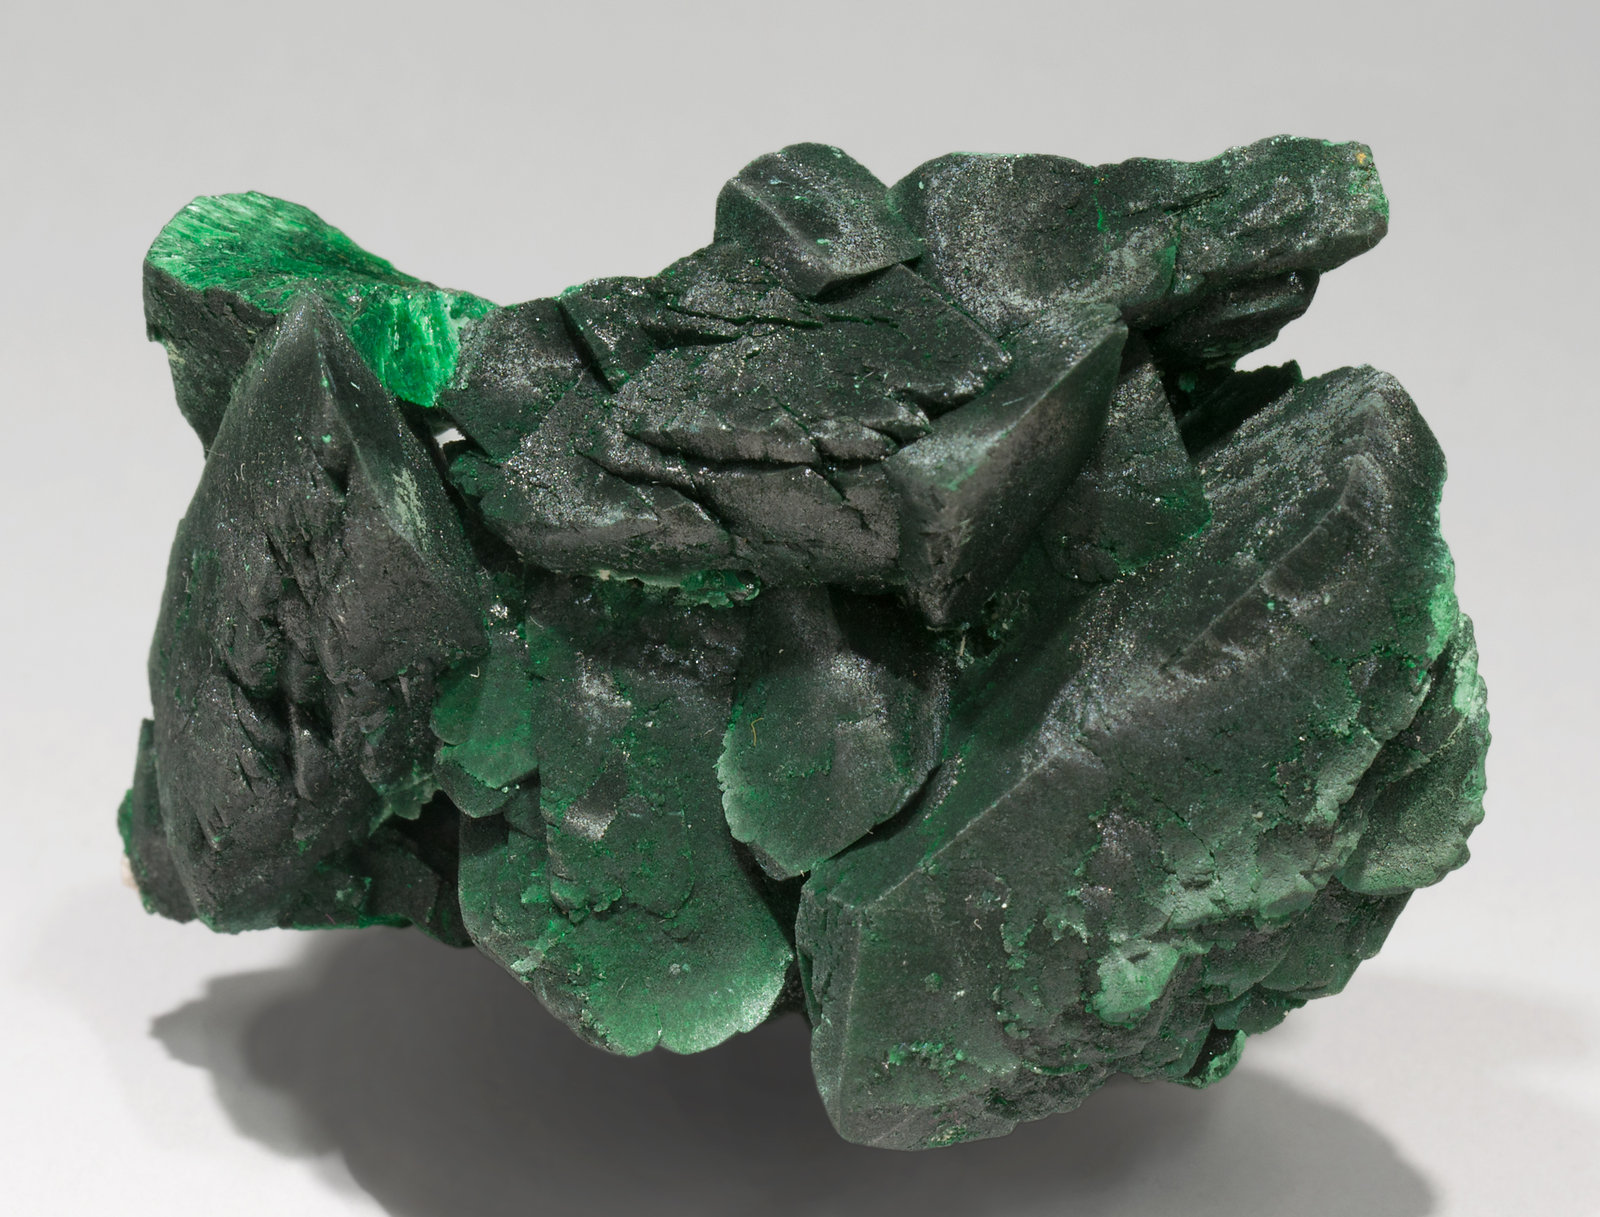 specimens/s_imagesX3/Malachite-TA67X3s.jpg